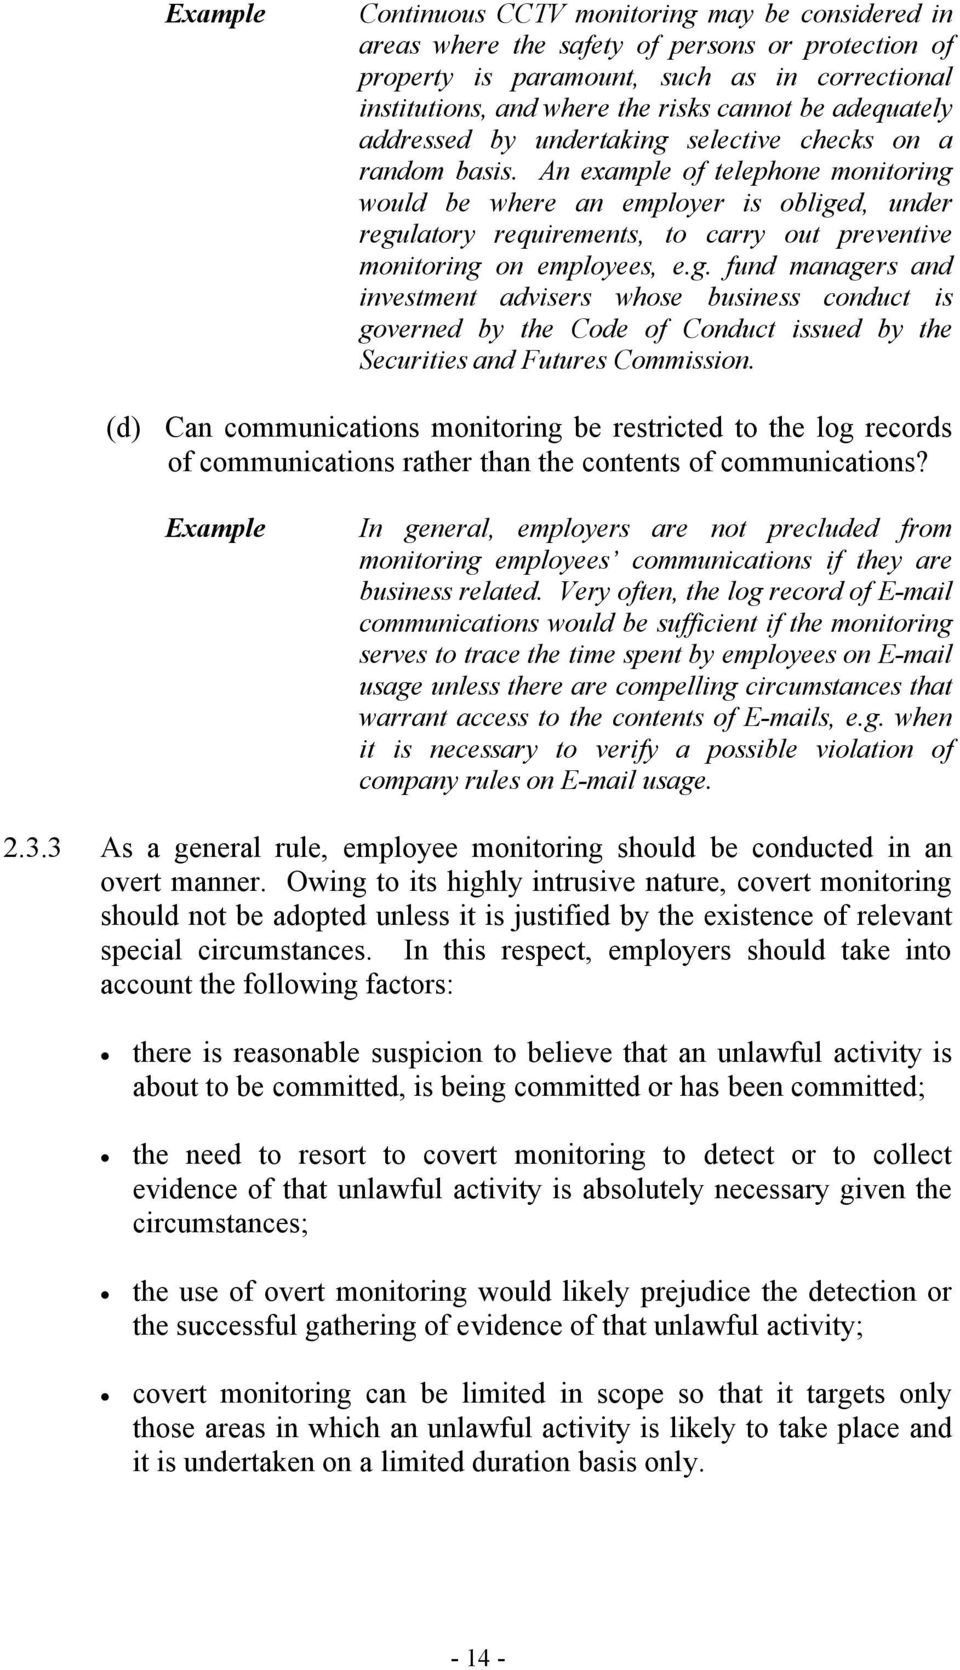 An example of telephone monitoring would be where an employer is obliged, under regulatory requirements, to carry out preventive monitoring on employees, e.g. fund managers and investment advisers whose business conduct is governed by the Code of Conduct issued by the Securities and Futures Commission.